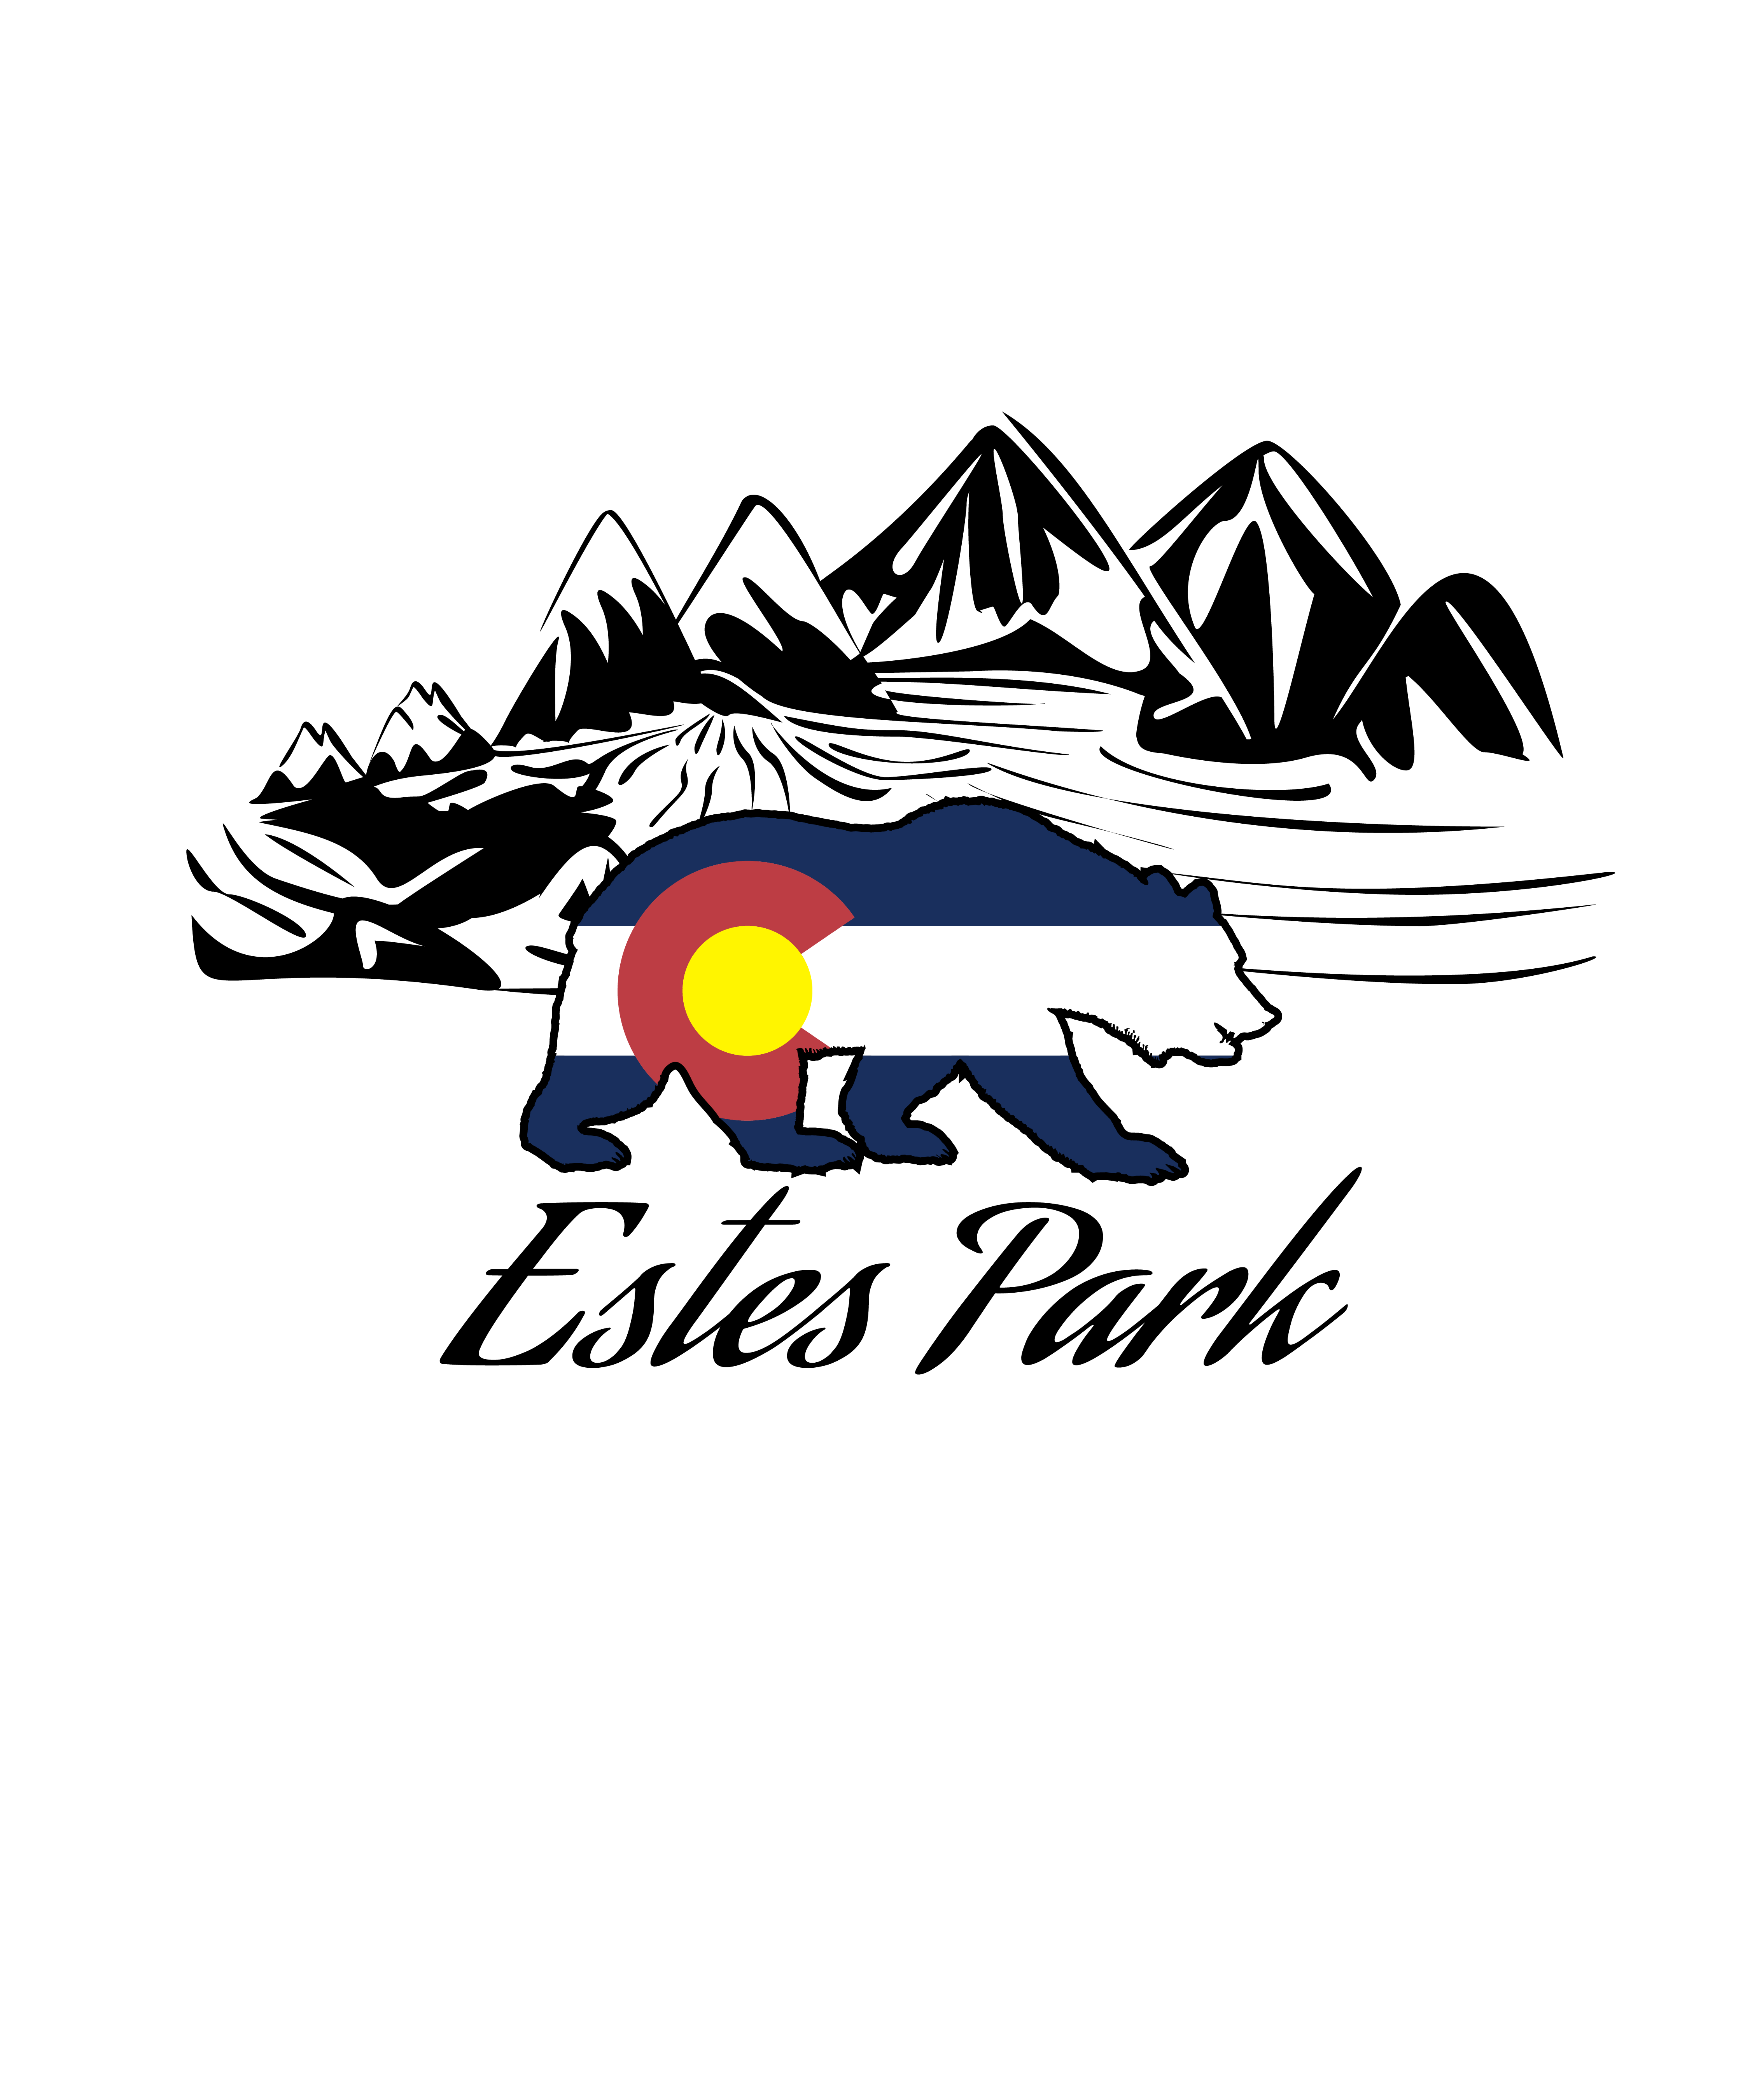 This is an estes park colorado design i made with a bear with the colorado flag on it and mountains